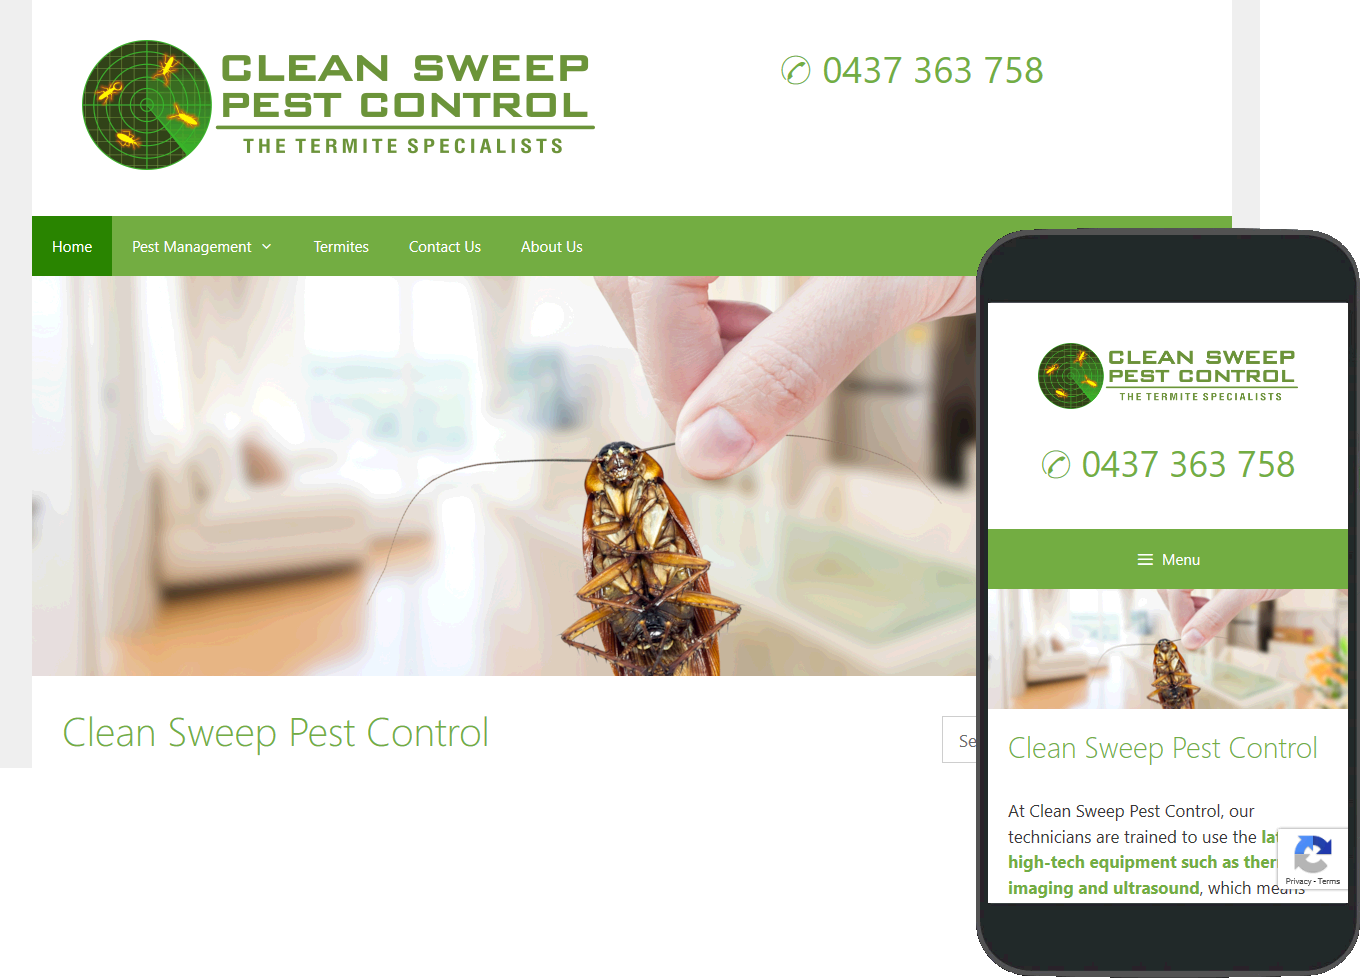 Clean Sweep Pest Control website portfolio images of desktop and mobile view